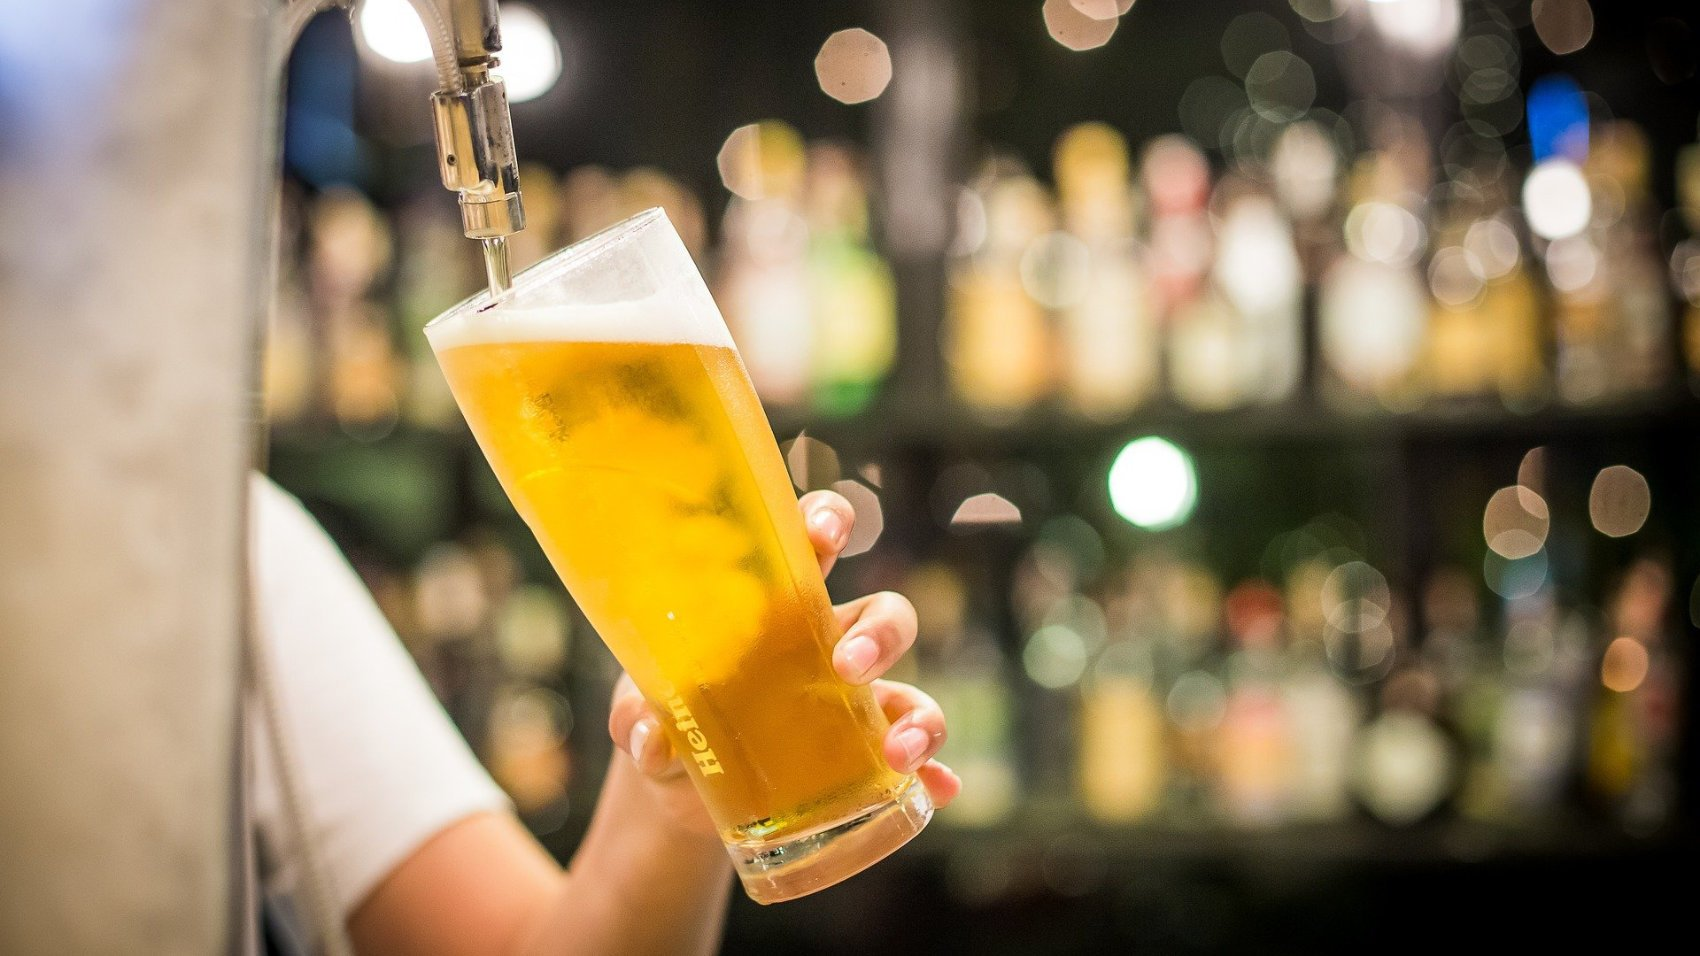 Pouring Beer - Image by amiera06